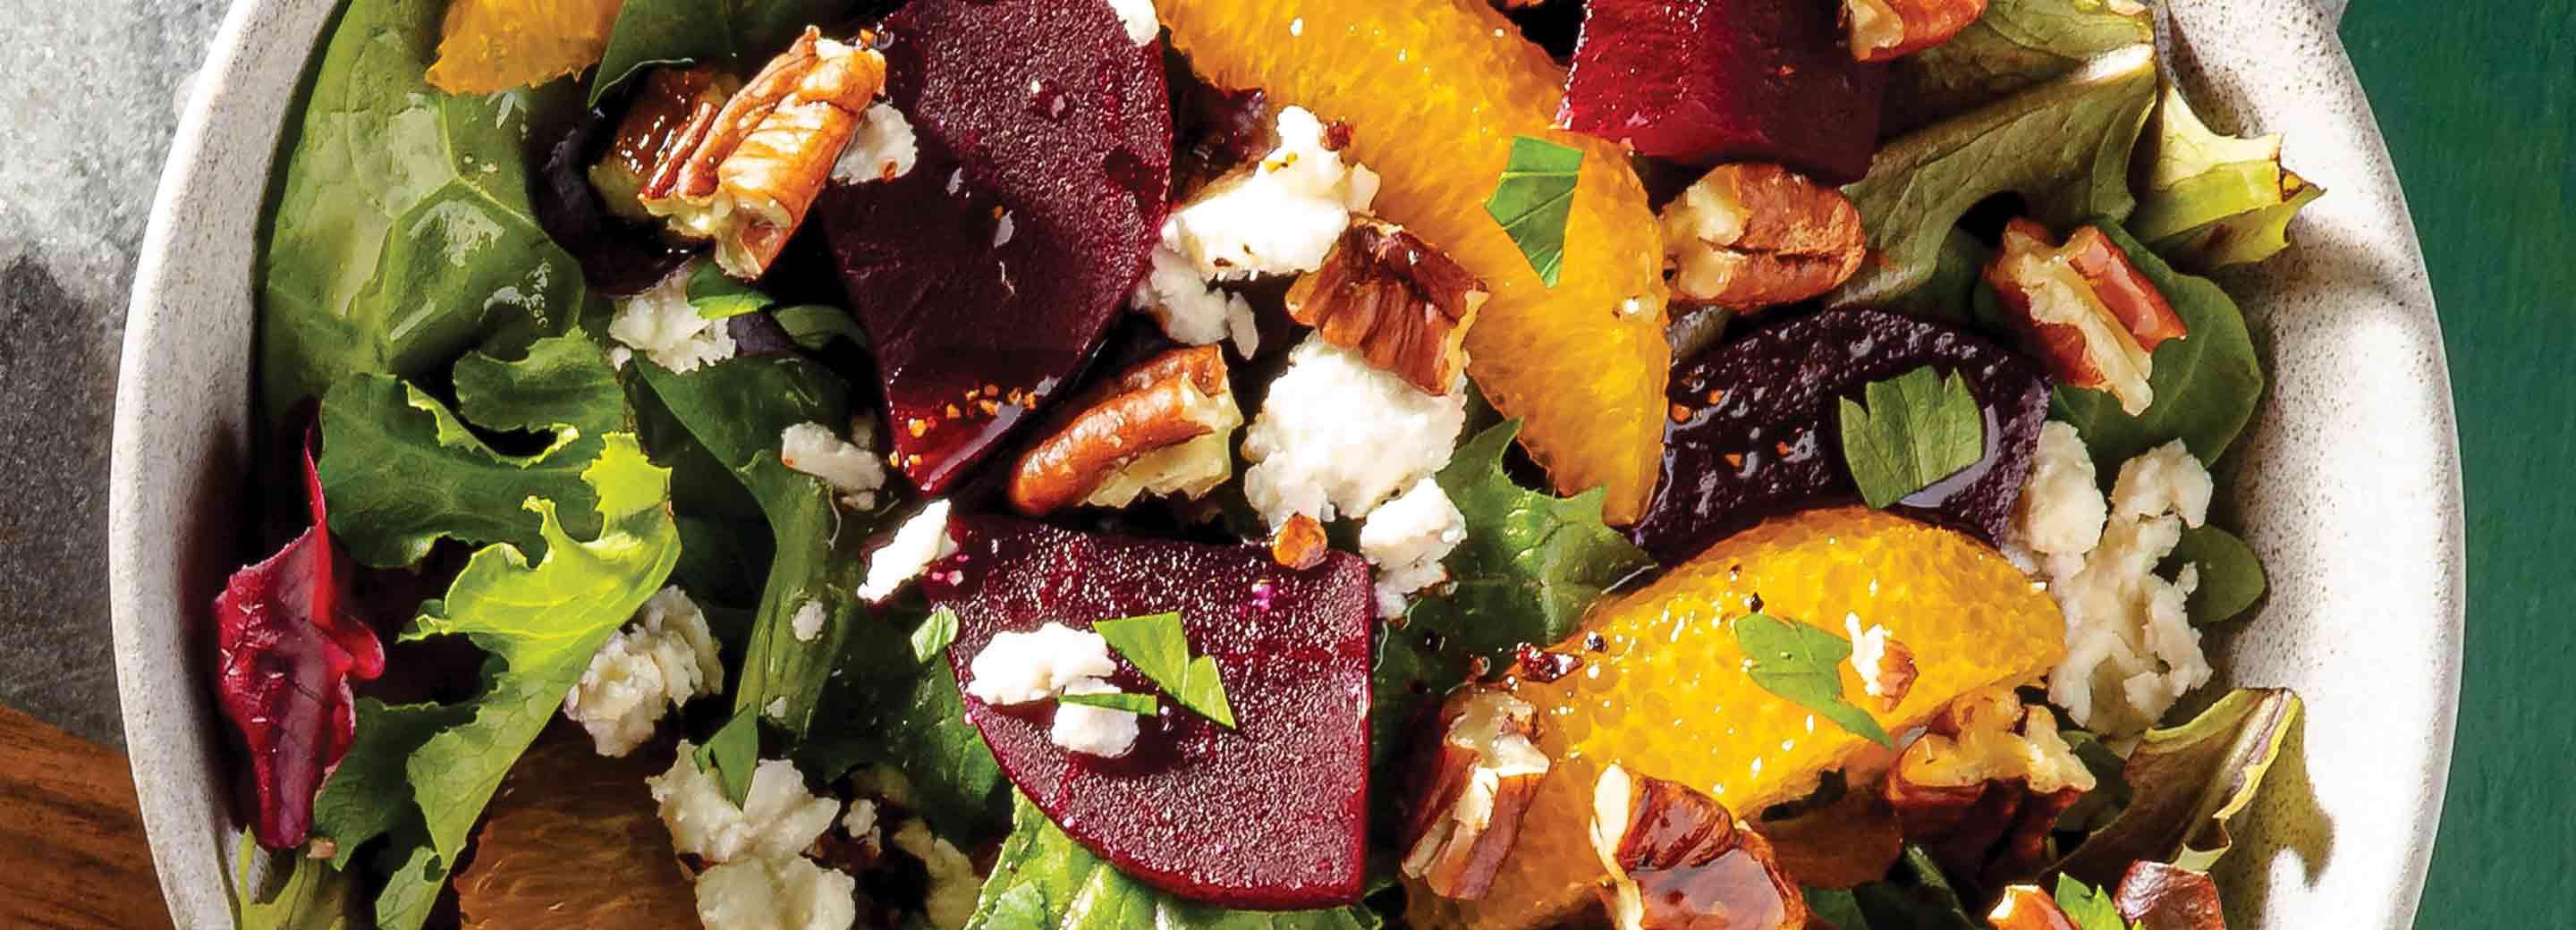 Simple Citrus & Beet Salad